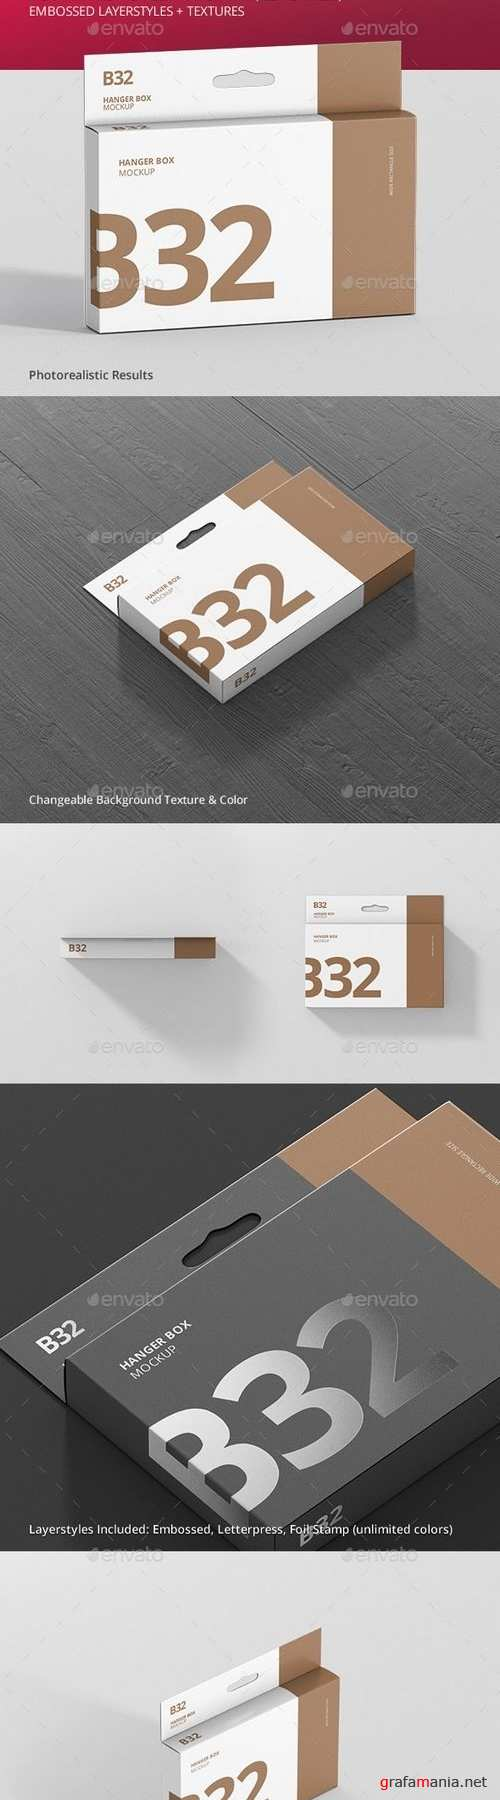 Box Mockup - Wide Slim Rectangle Size with Hanger - 21258176